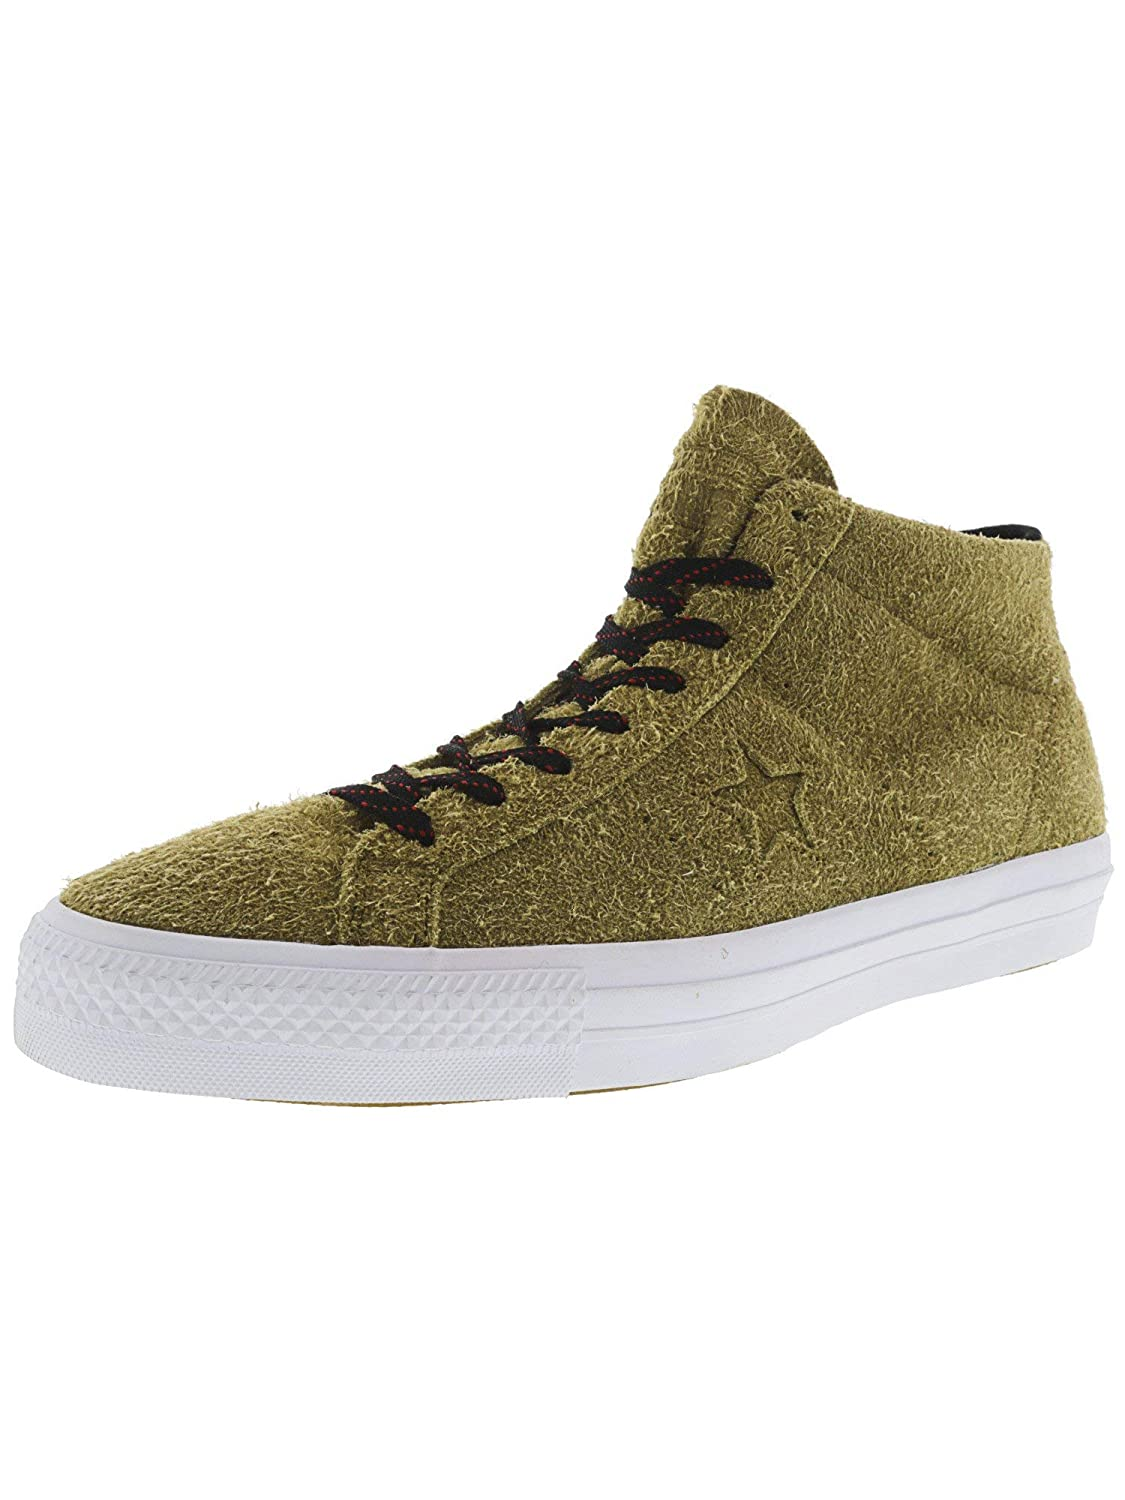 2converse one star pro suede